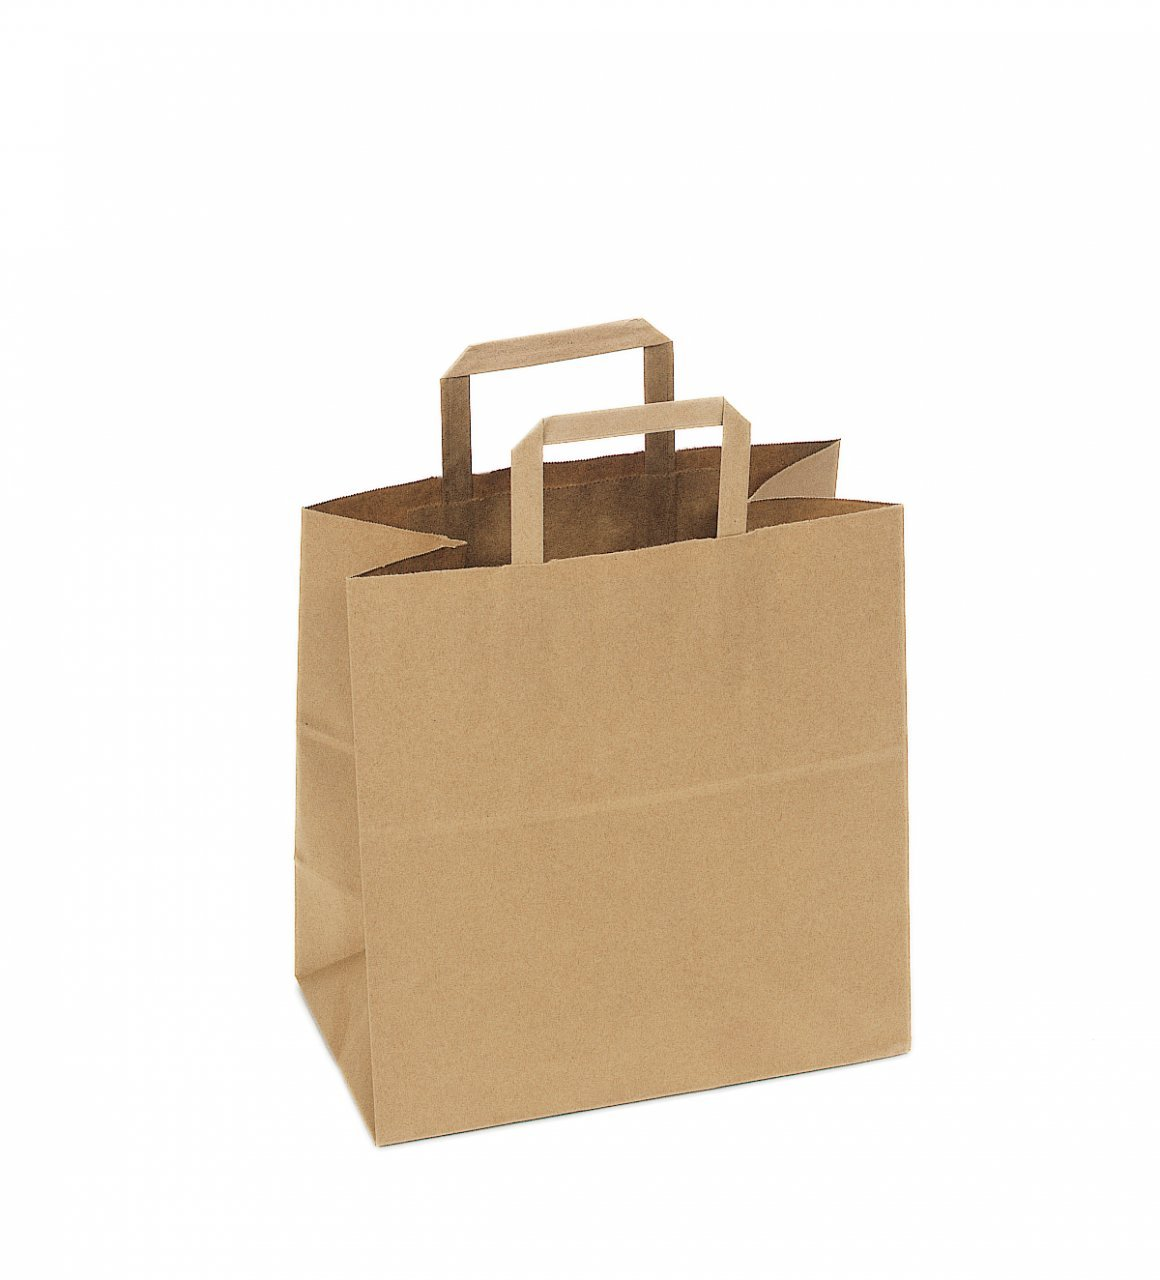 SafePro 12717, 12x7x17-Inch Kraft Paper Shopping Bags With Handles, Disposable Take Out Unprinted Grocery Bags, 300-Piece Bundle